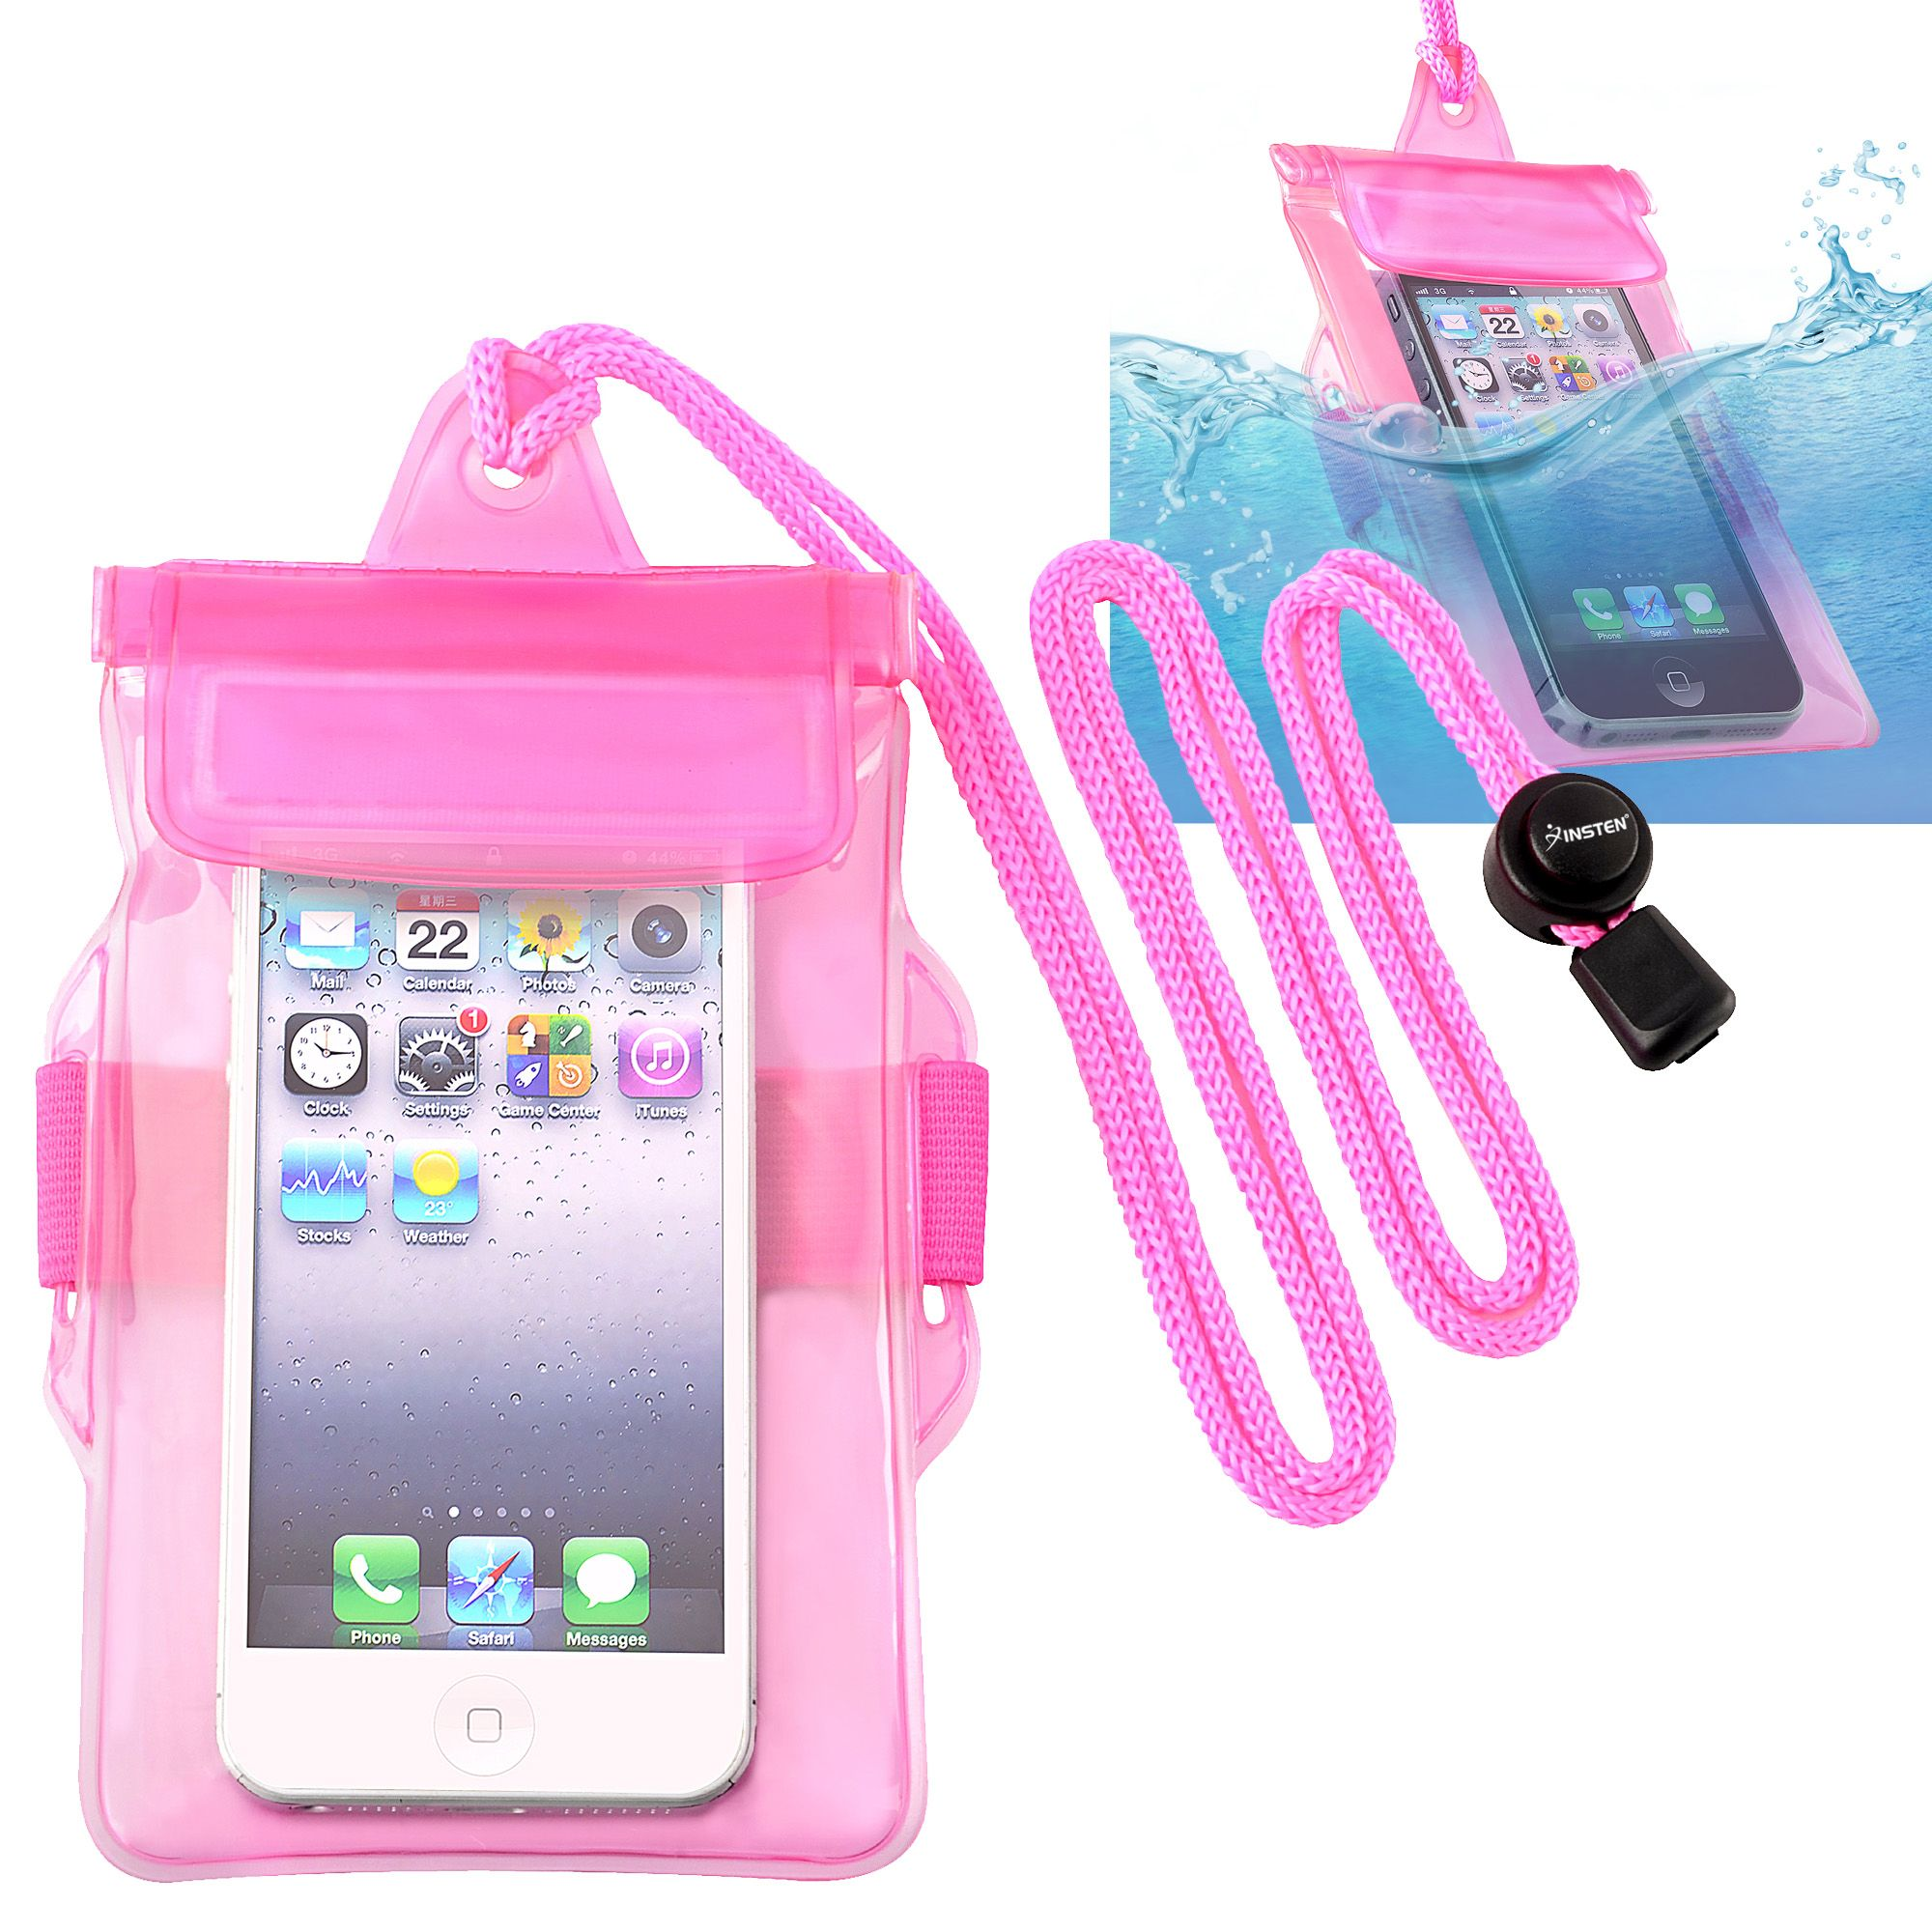 Waterproof Dry Bag Carrying Case Phone Holder Universal by Insten, Hot Pink iPhone 8 7 6 SE 5 5S 5C 4S / LG Stylo 3 2 Plus Stylus 3 Tribute HD X STYLE X power Aristo K7 K8 K10 K20 Galaxy A5 A3 A7